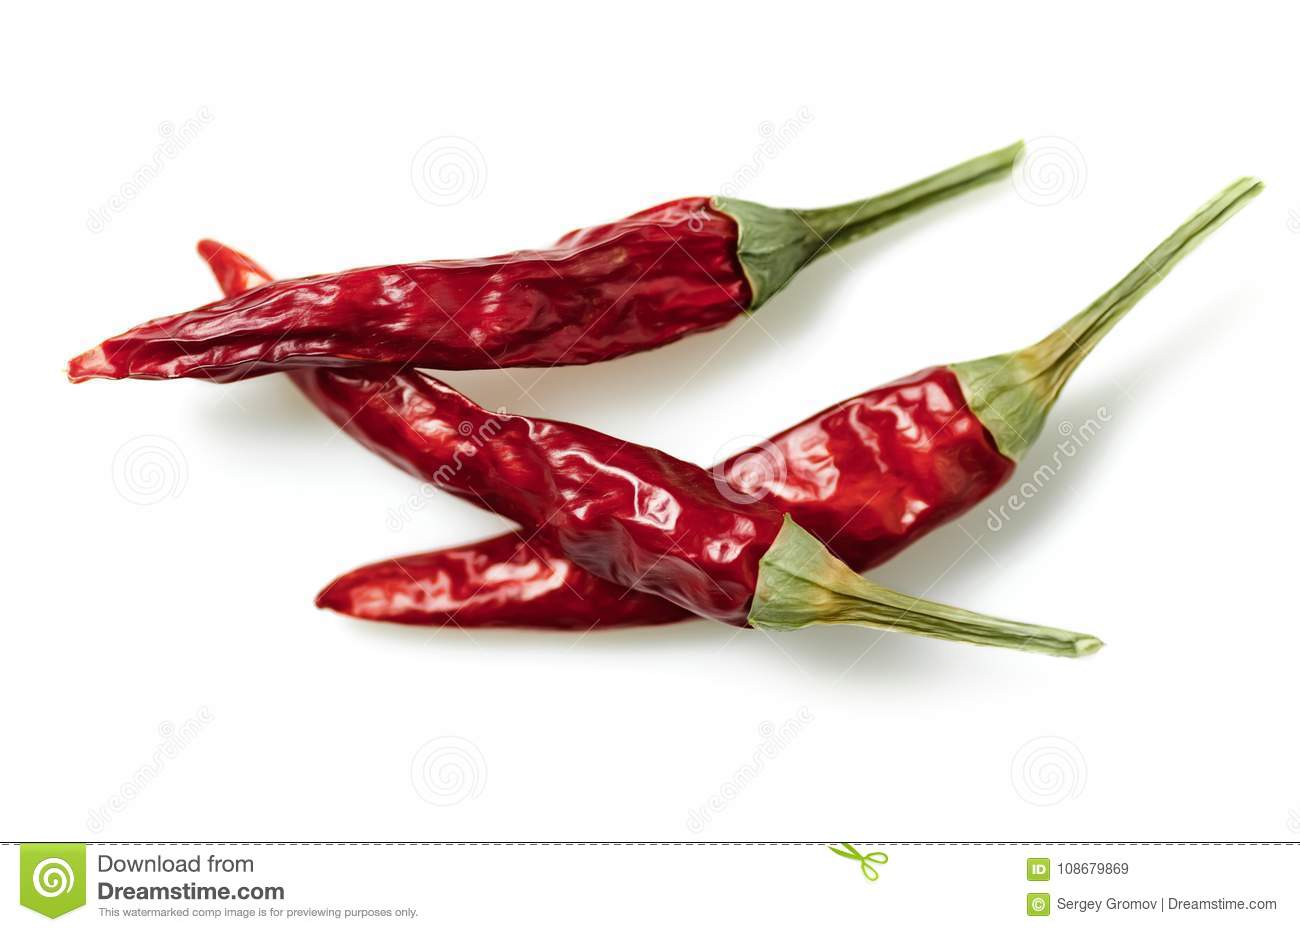 how to cook with dried red chili peppers